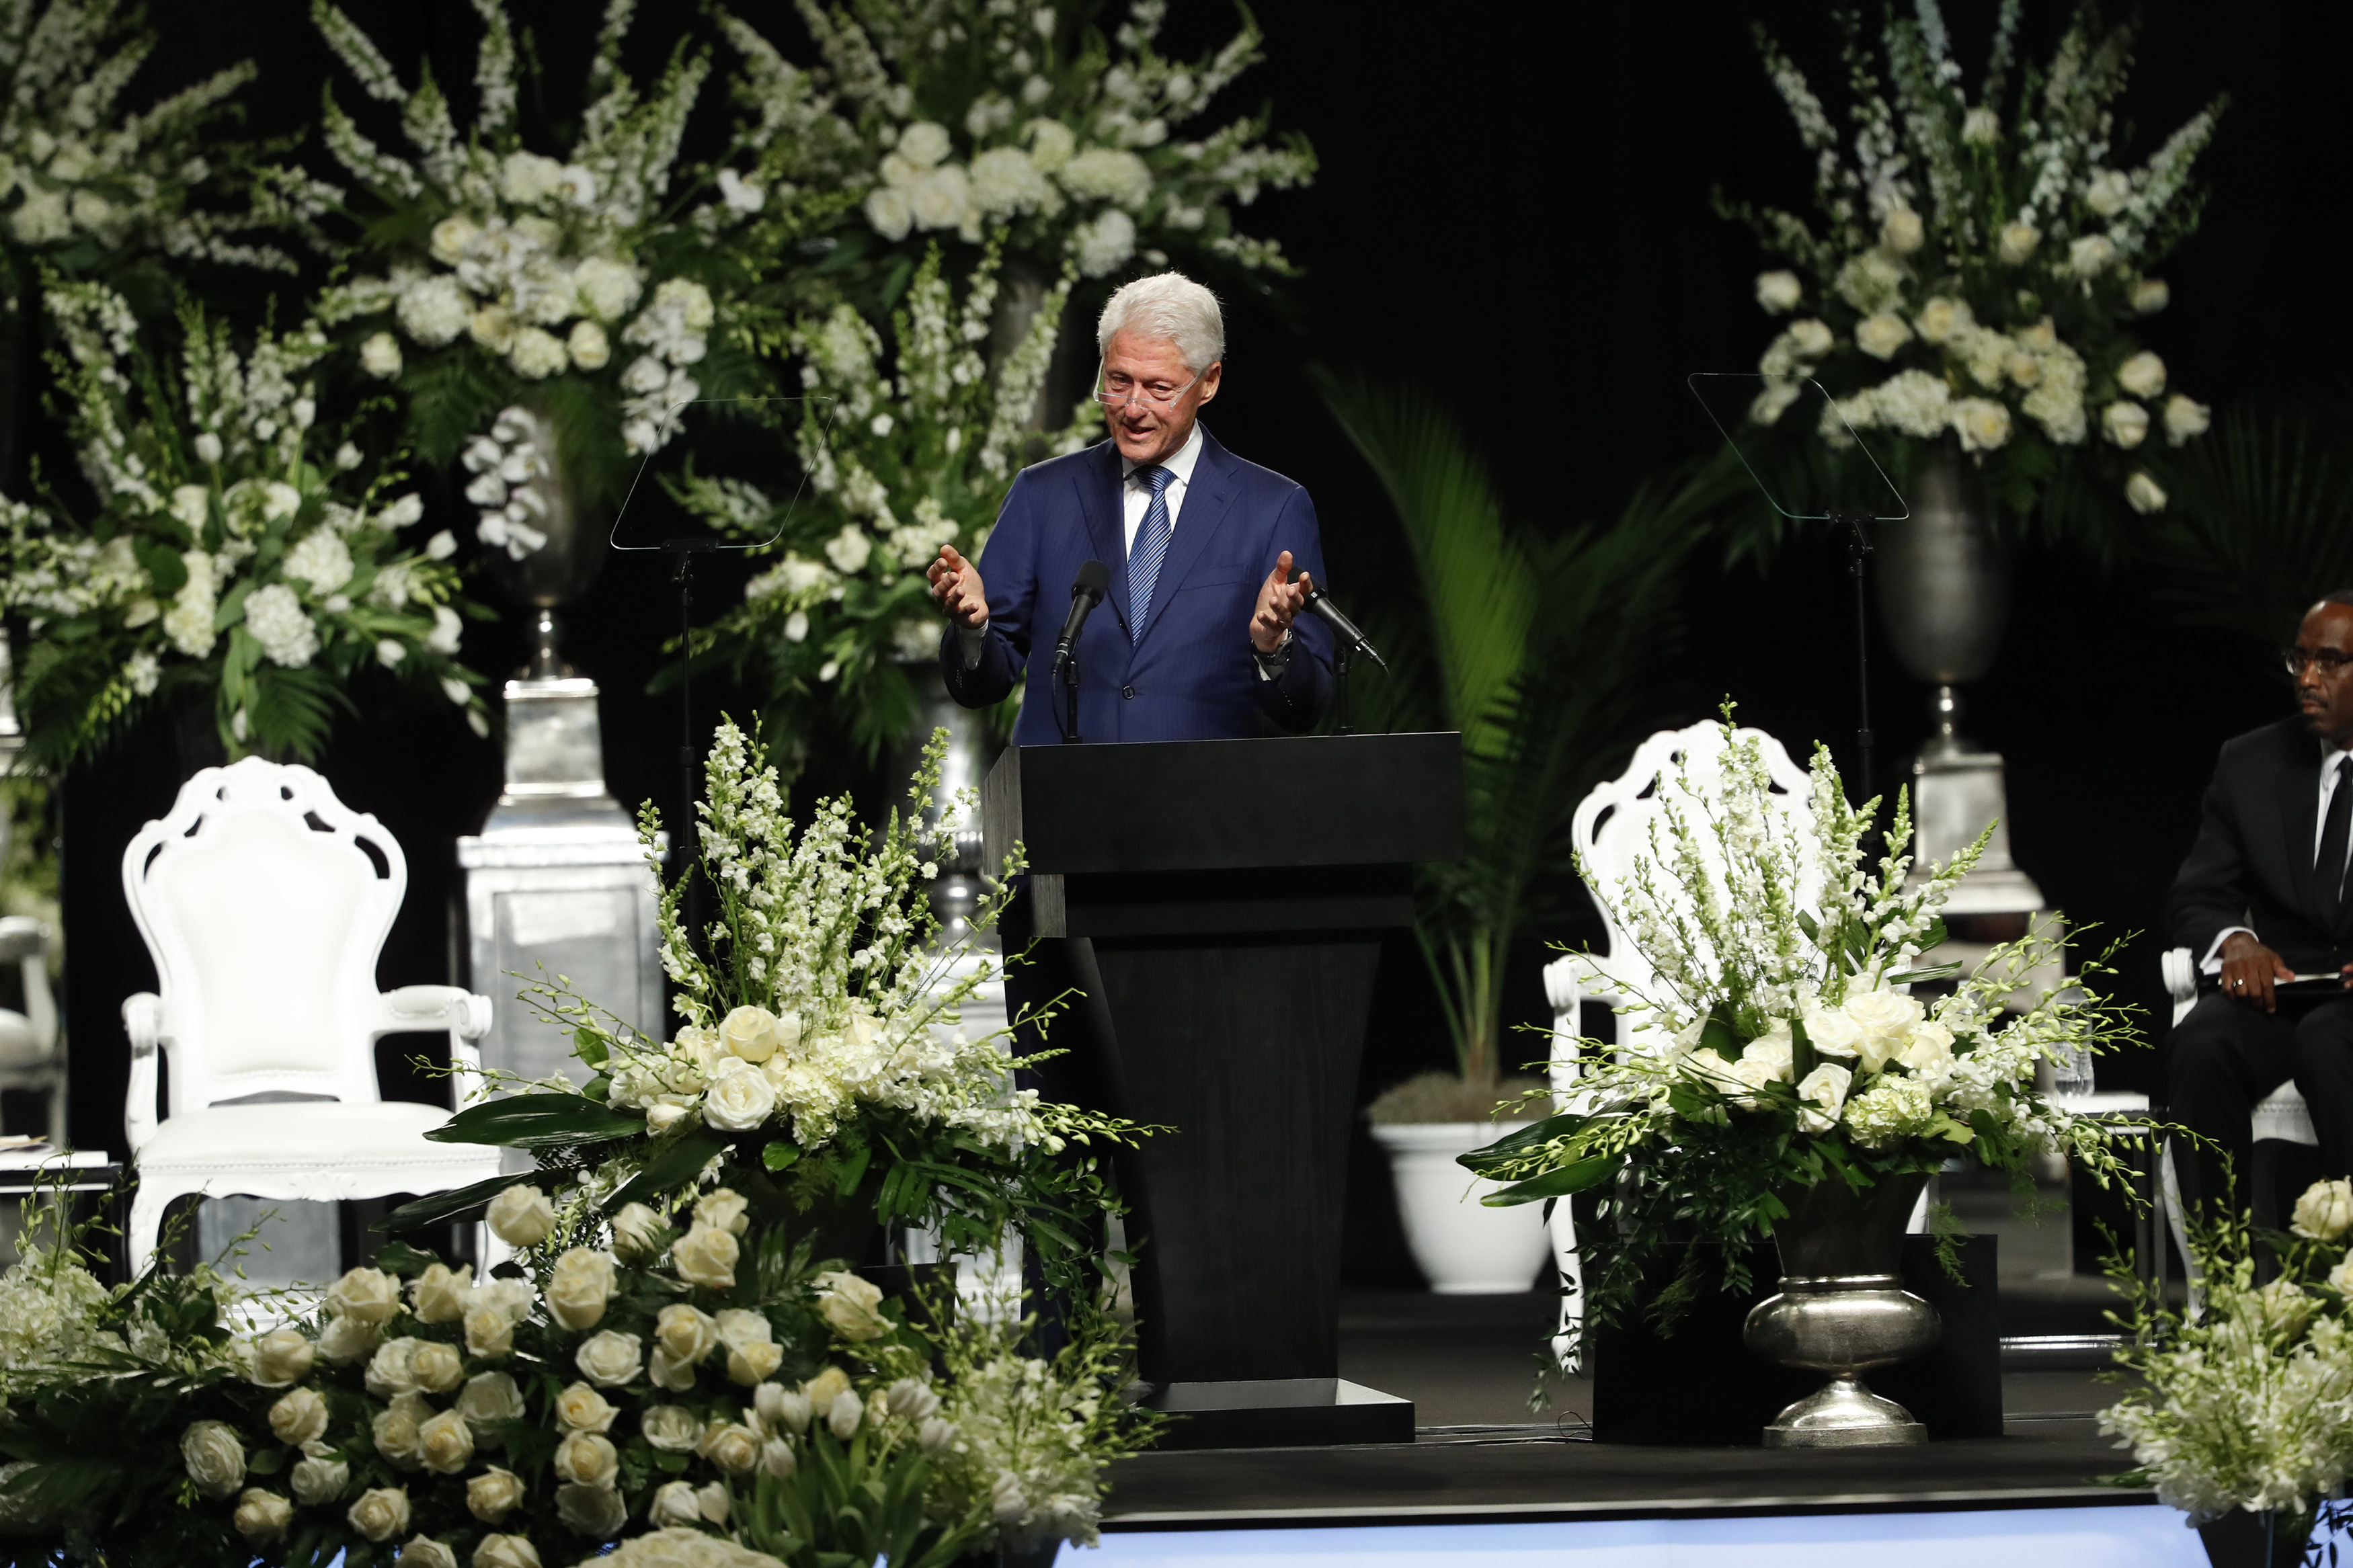 LOUISVILLE, KY - JUNE 10: President Bill Clinton speaks during a memorial service for boxing legend Muhammad Ali on June 10, 2016 at the KFC Yum! Center in Louisville, Kentucky. Ali died June 3 of complications from Parkinson's disease.   Aaron P. Bernstein/Getty Images/AFP